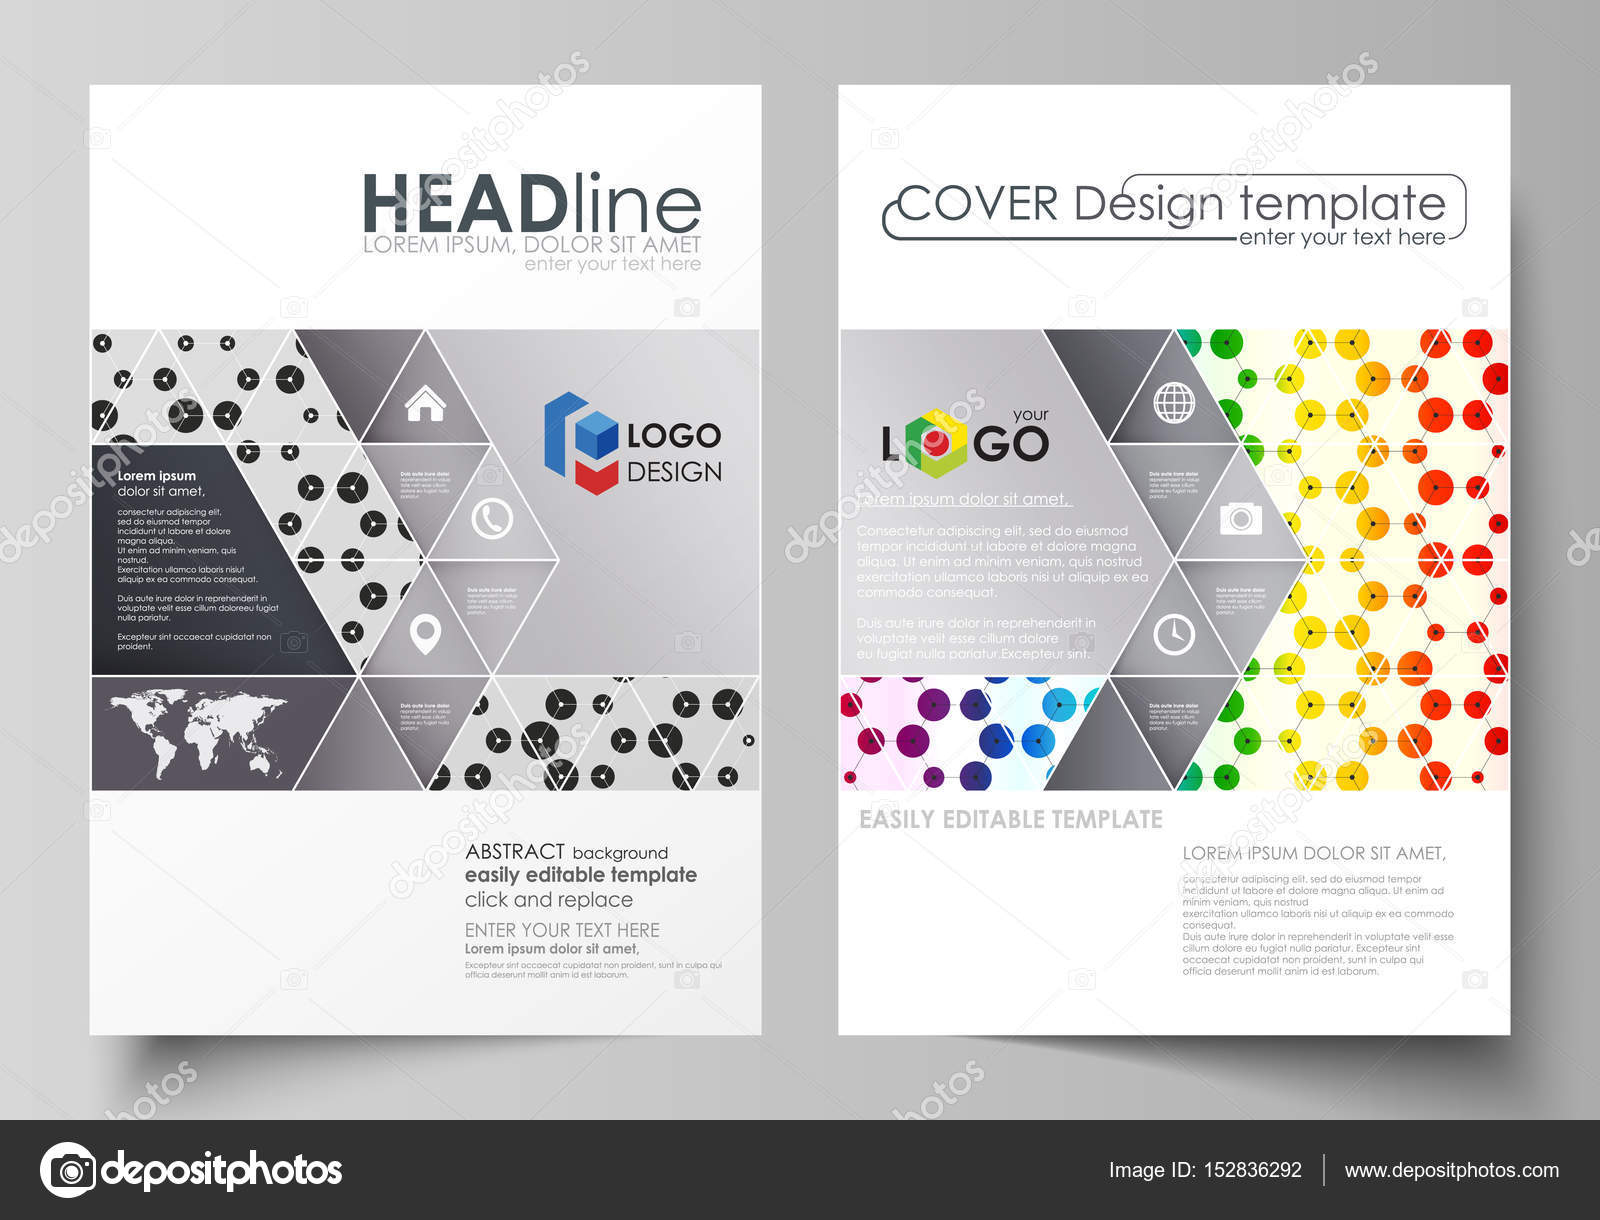 Business Templates For Brochure, Flyer, Annual Report. Cover Template,  Abstract Vector Layout  Annual Report Cover Template